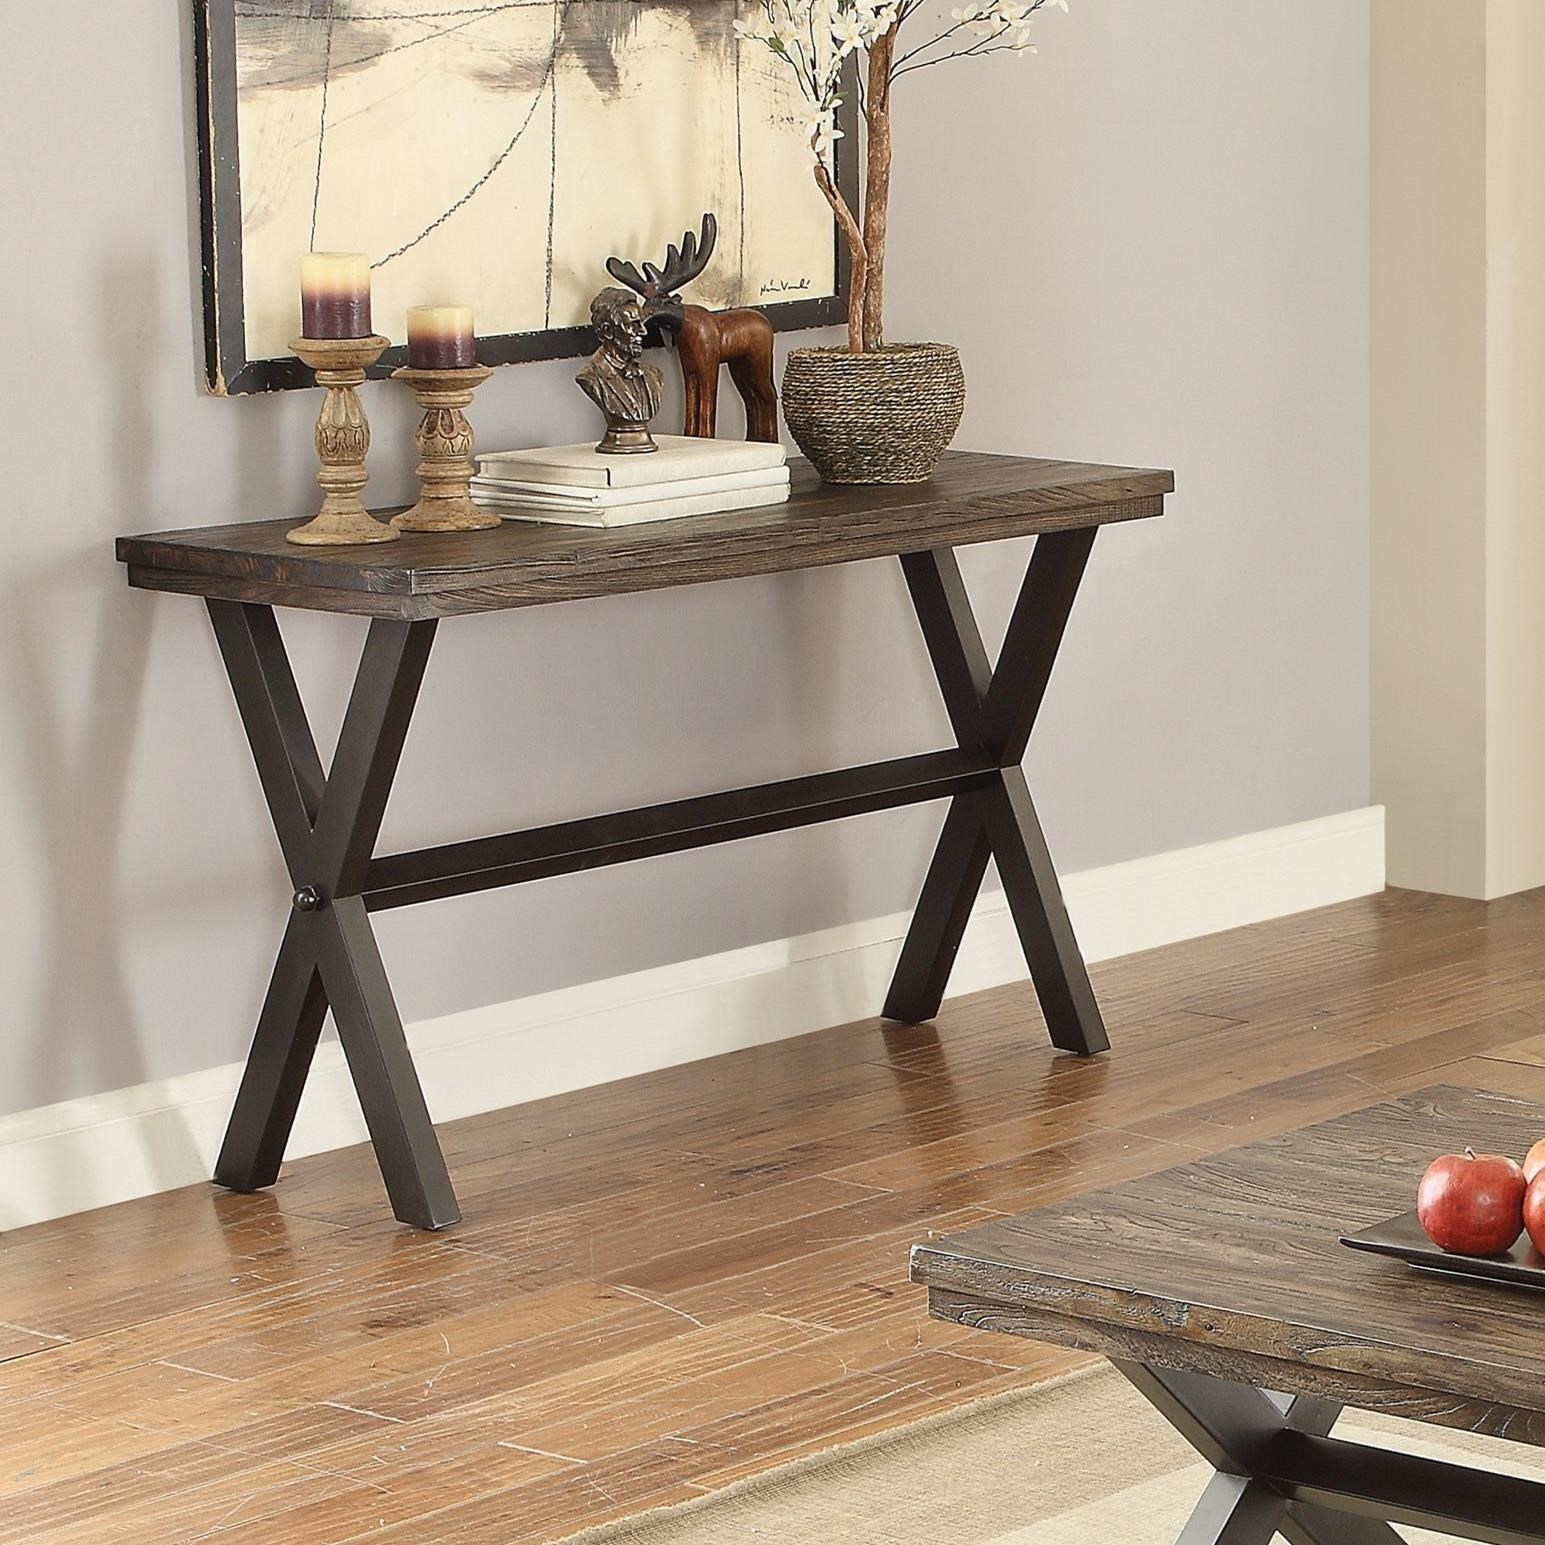 705279 romilly rustic sofa table